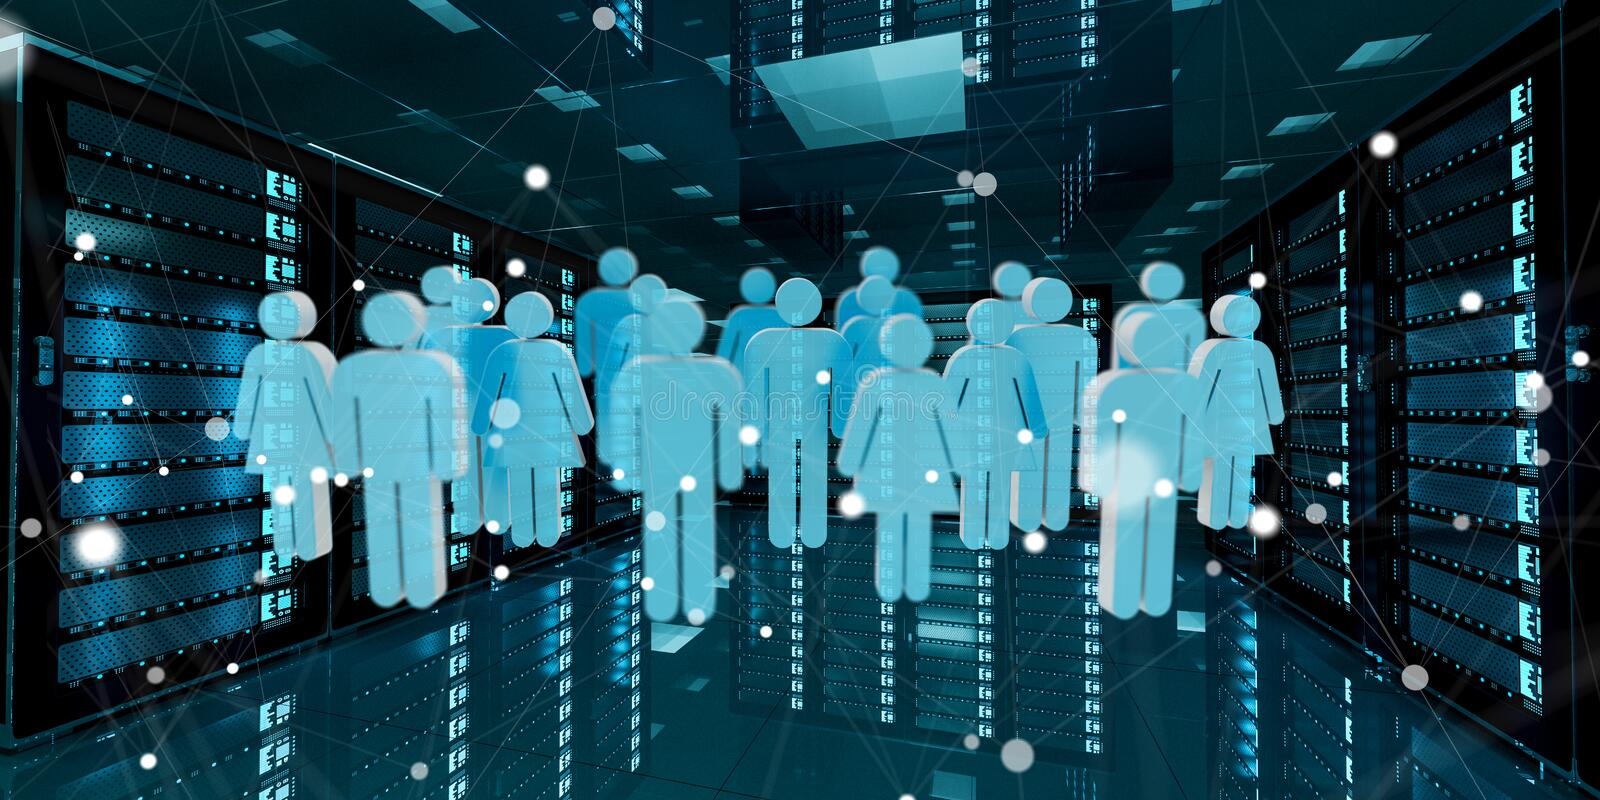 Group of people icons flying over server room data center 3D rendering vector illustration